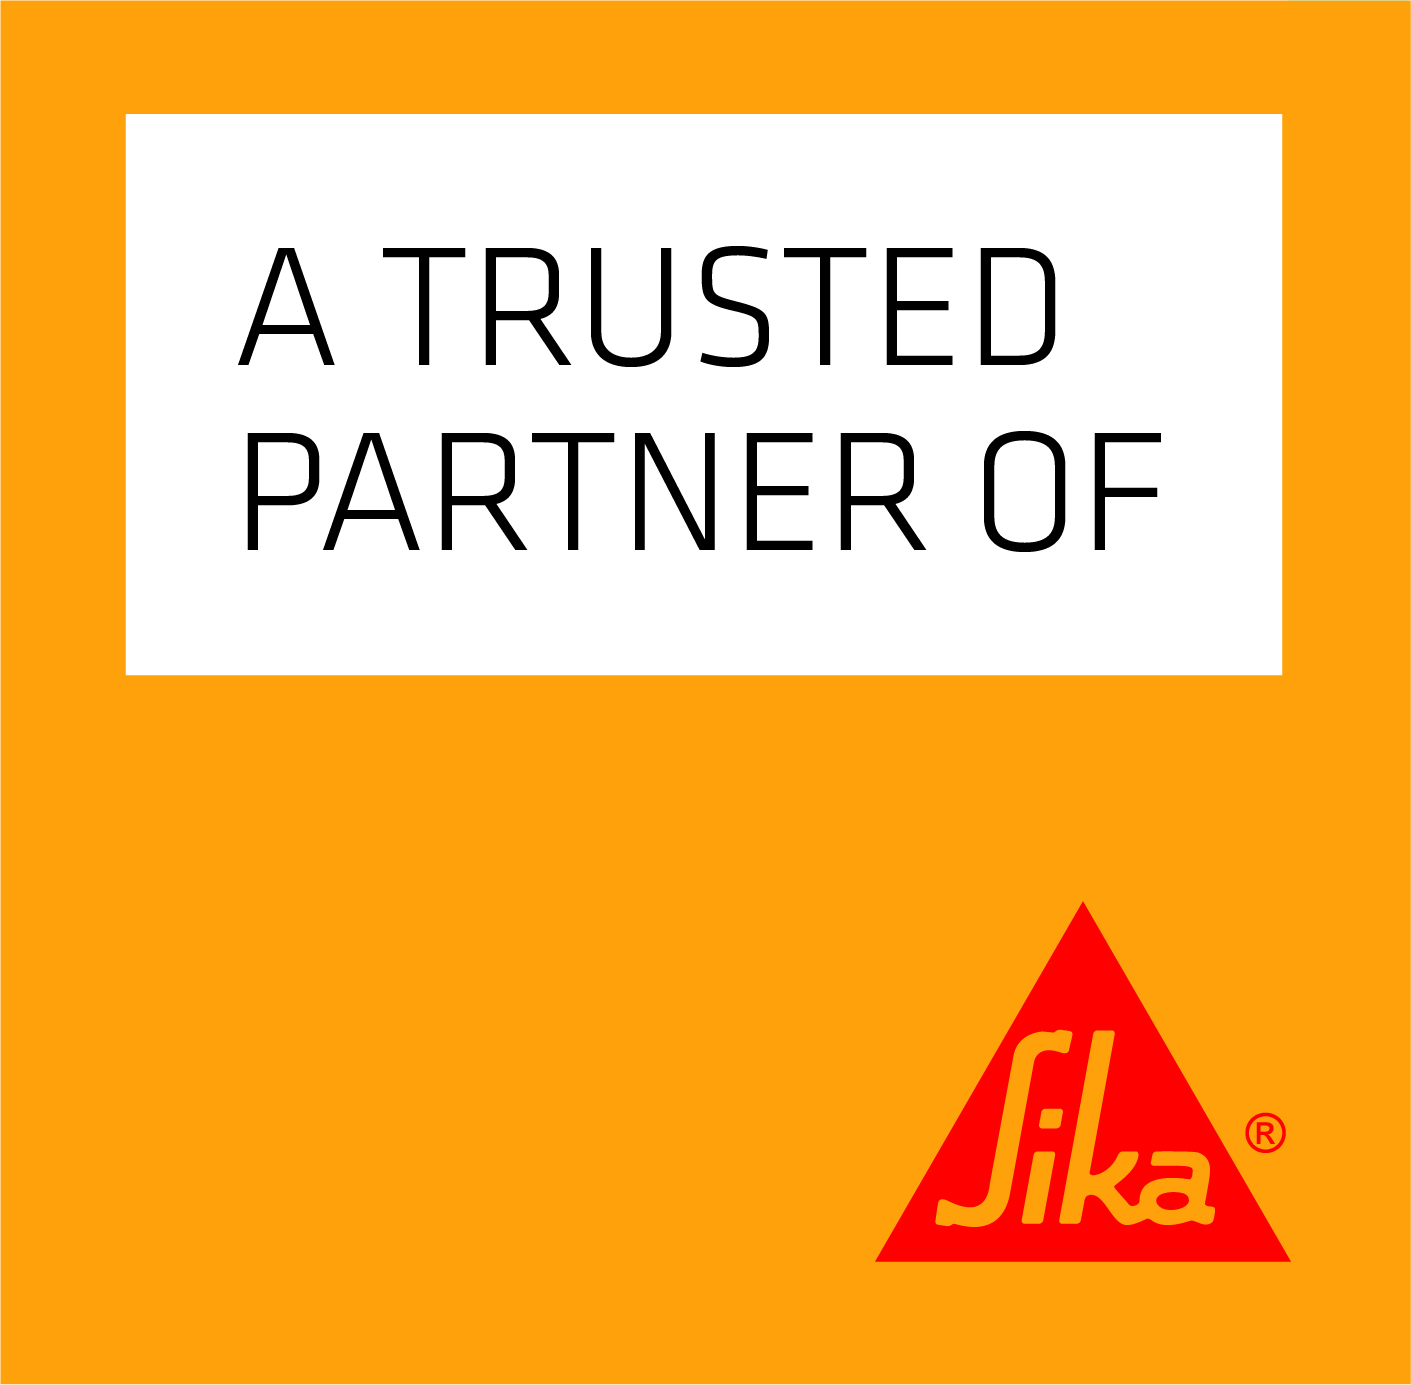 A trusted partner of Silka